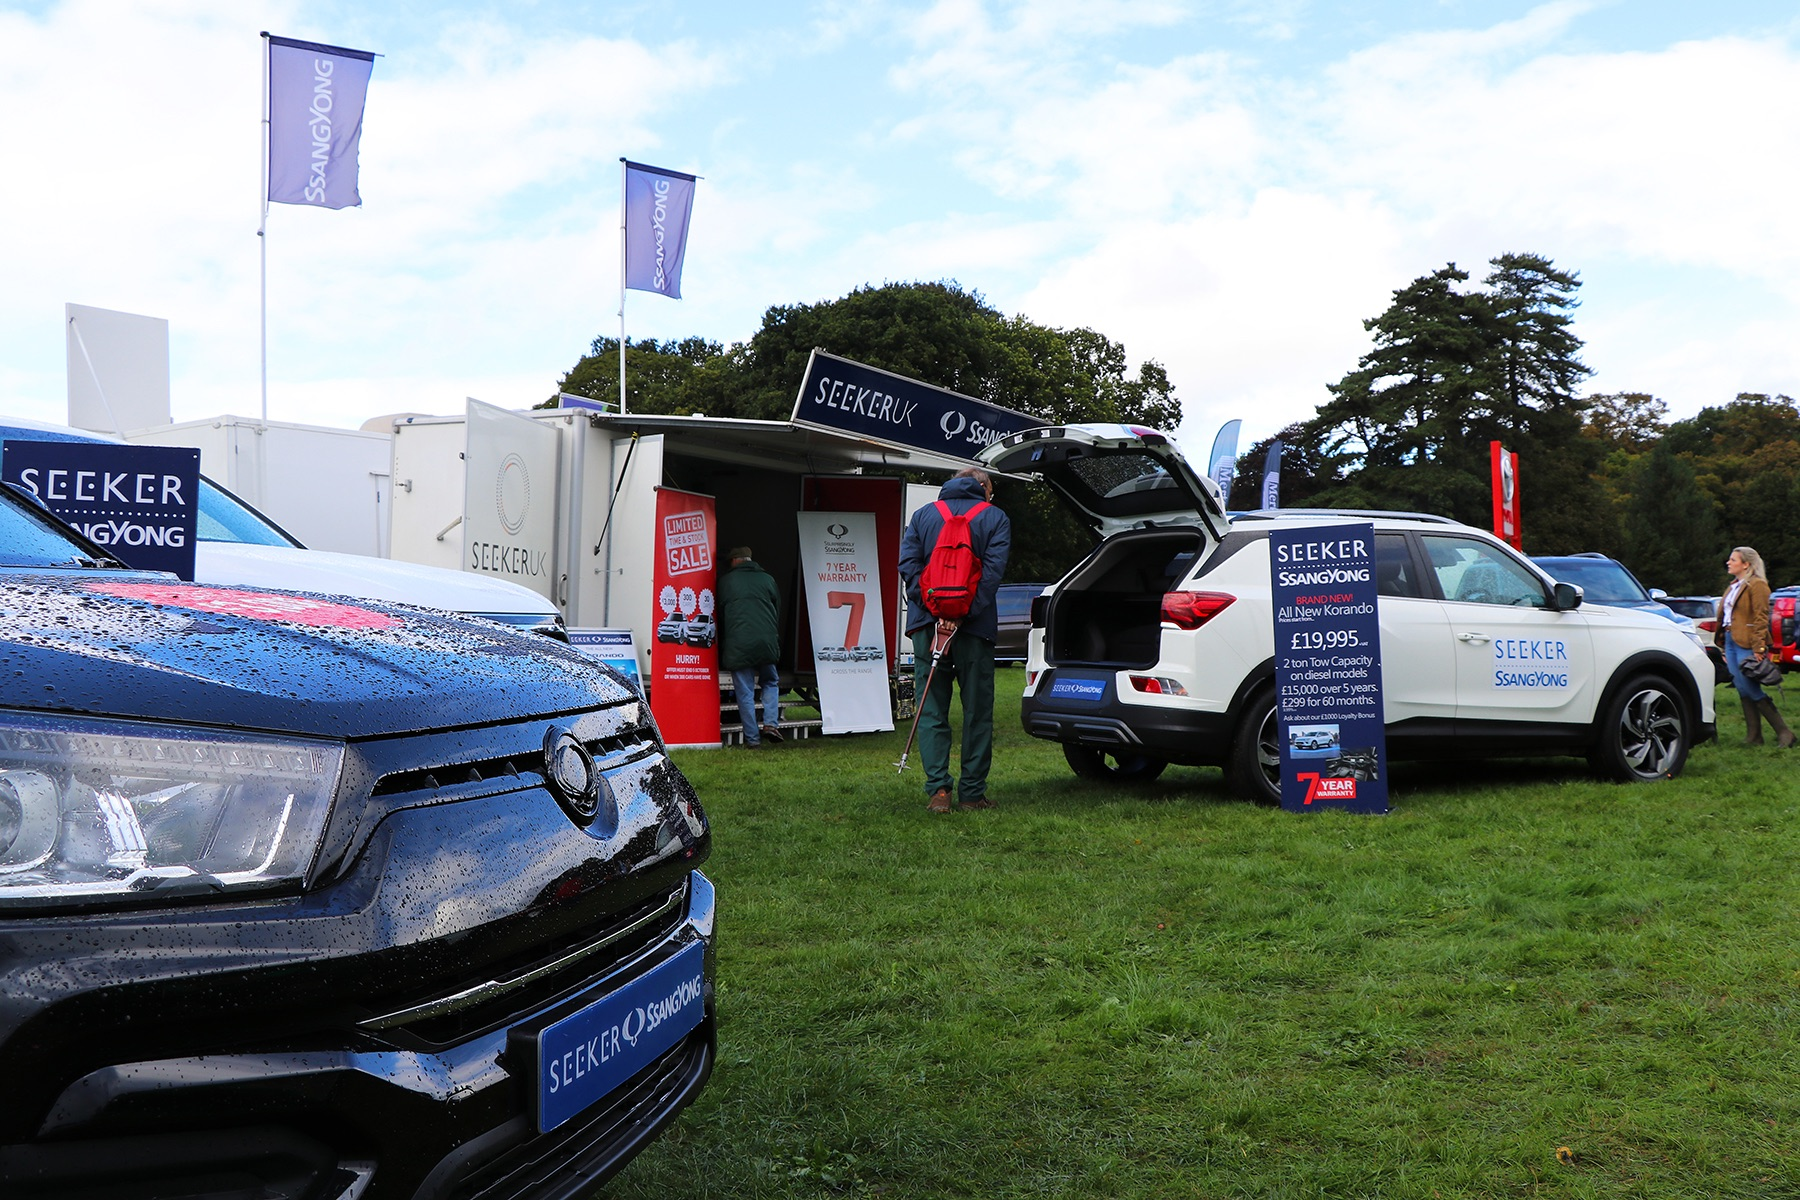 Seeker SsangYong at the Southwell Ploughing Match 2019 held at Thoresby Park